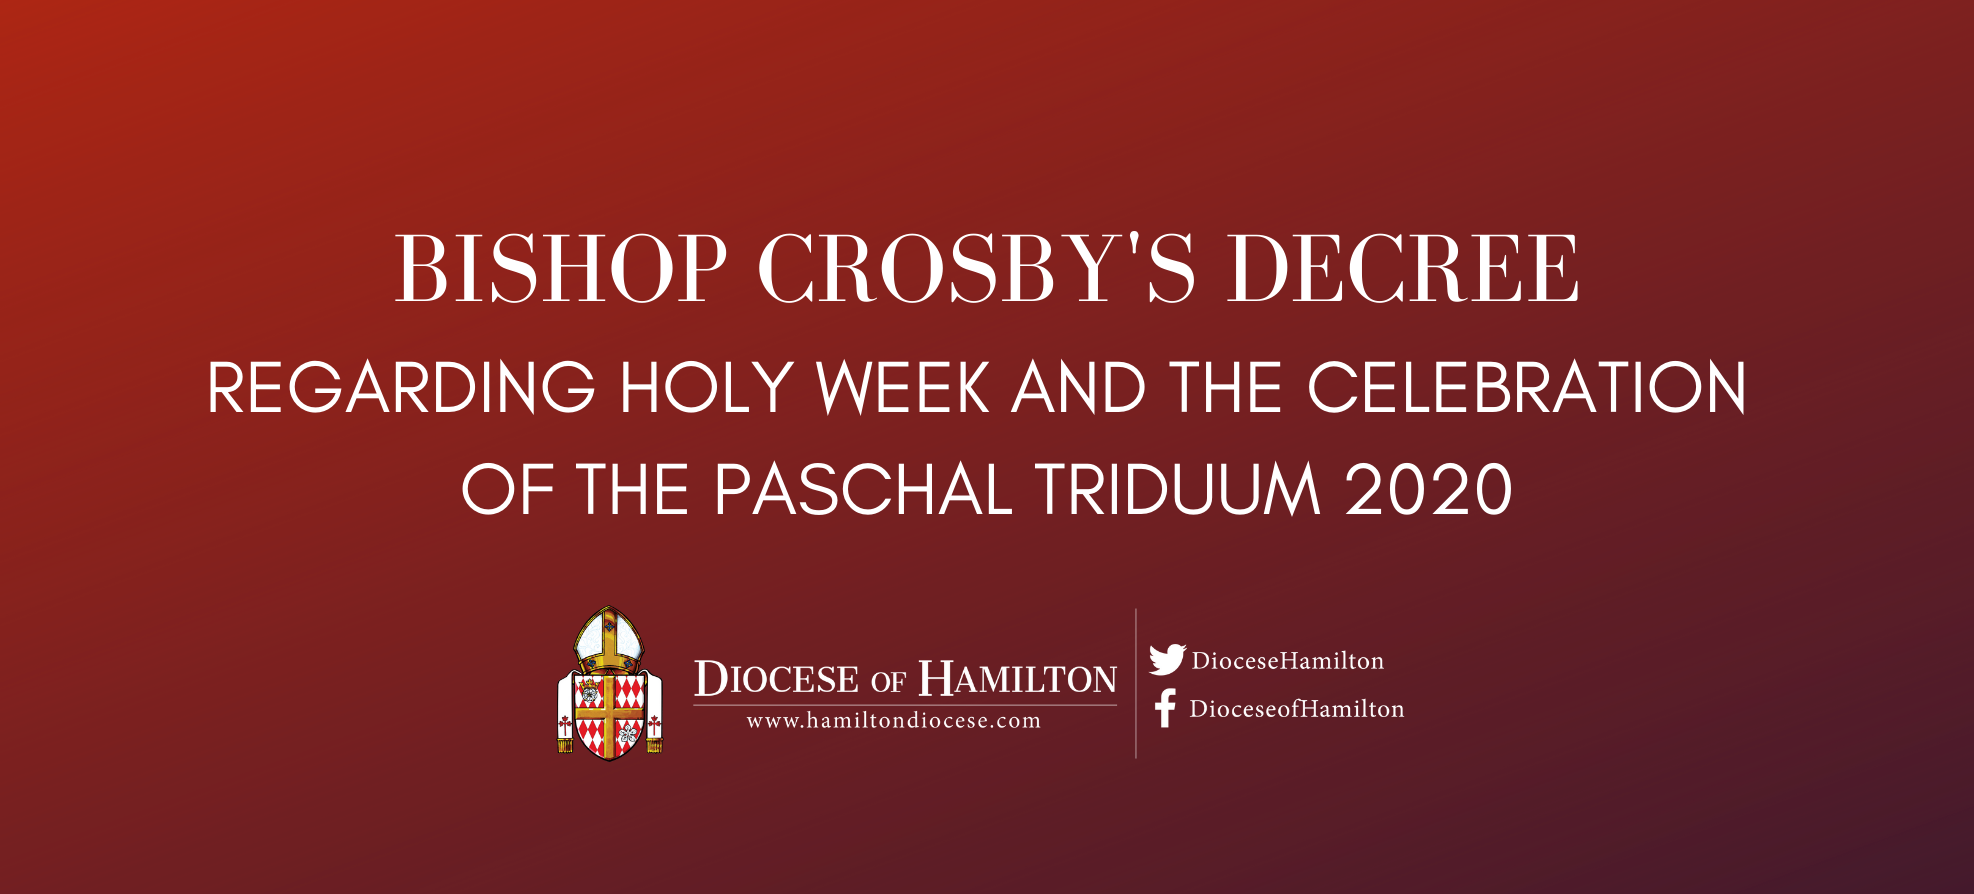 Decree Regarding Holy Week and the Celebration of the Paschal Triduum 2020